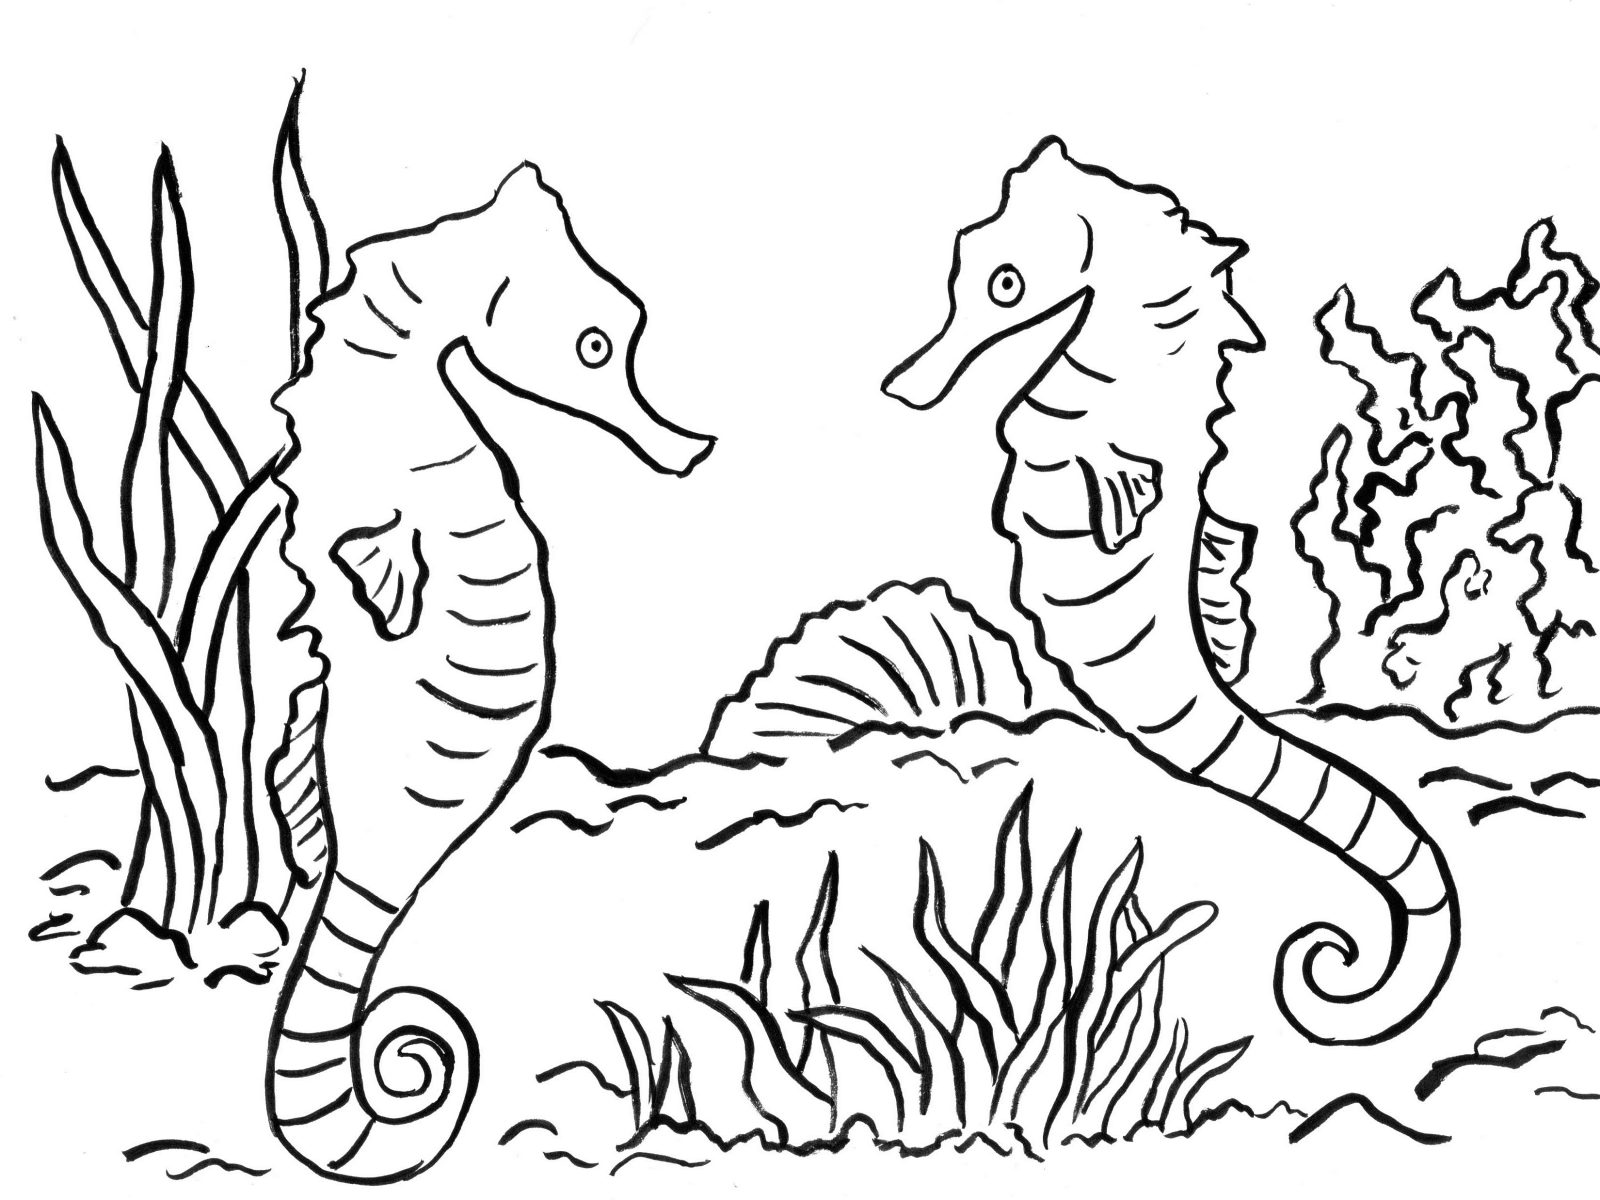 1600x1200 Coloring Pages Seahorses Exquisite Ocean For Adults Free Printable